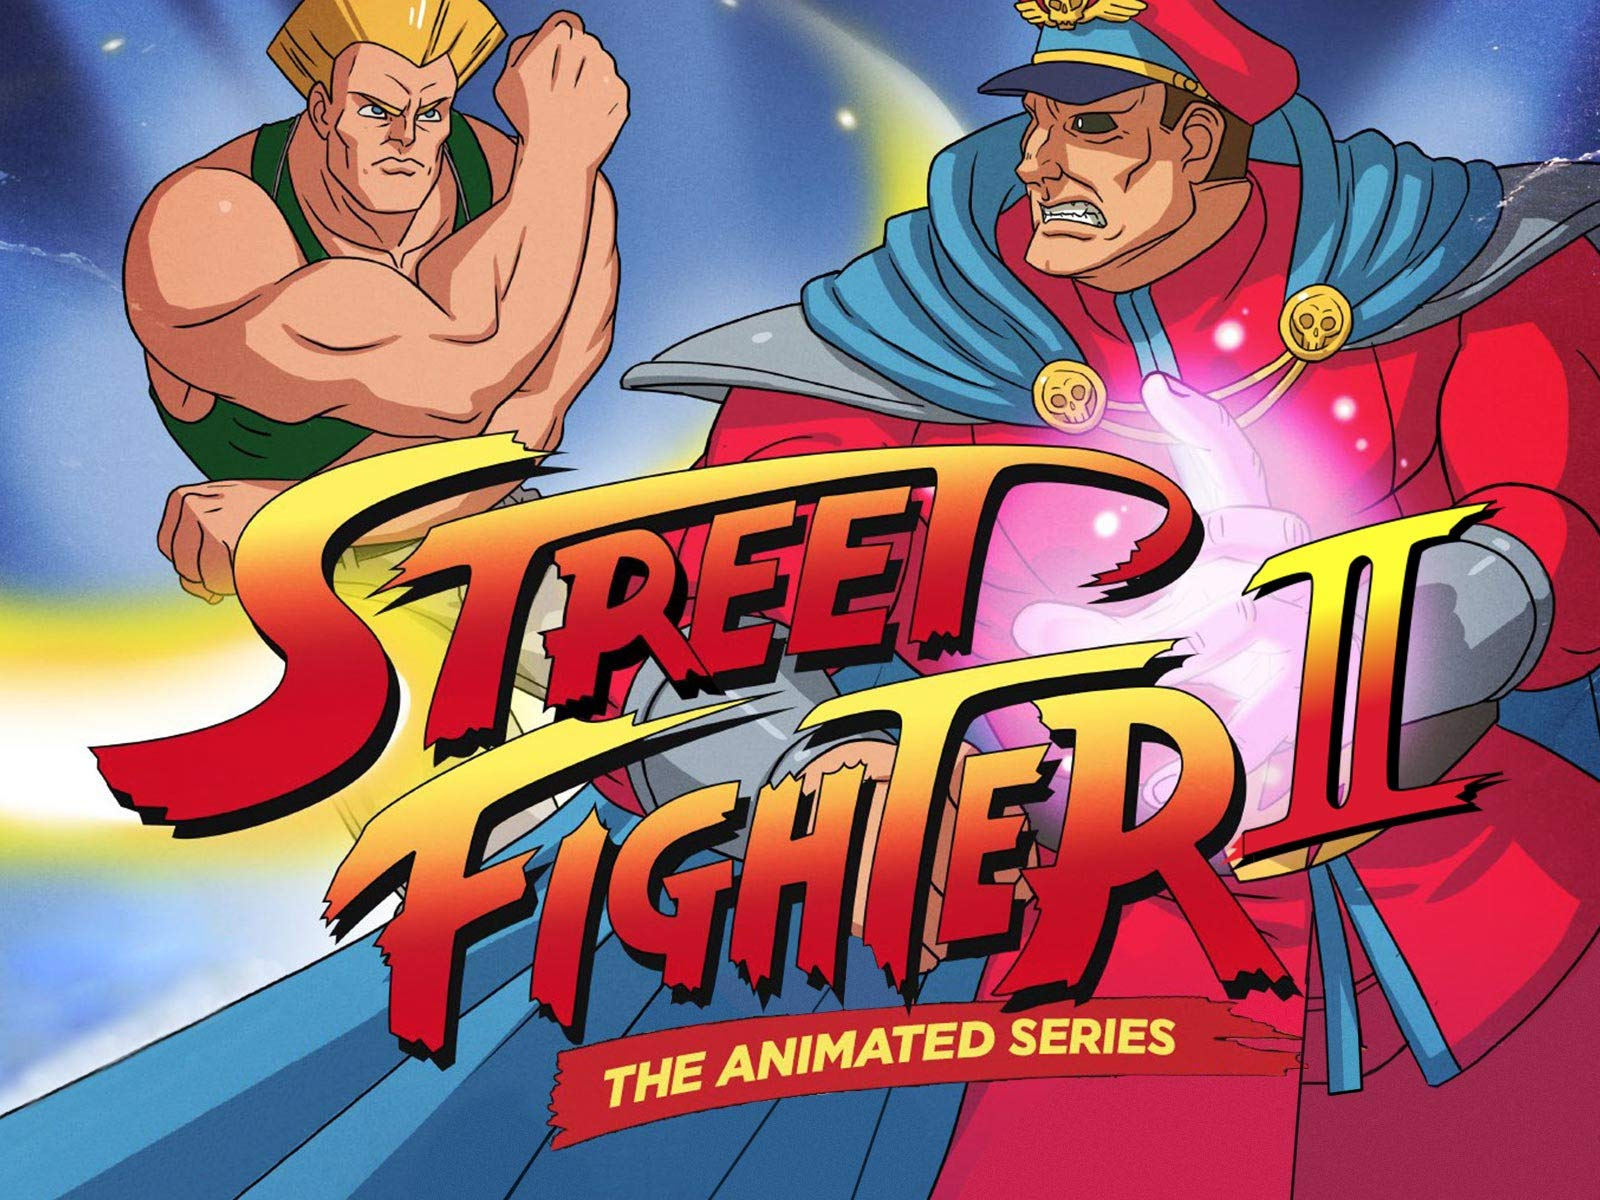 Watch Street Fighter Ii The Animated Series Prime Video